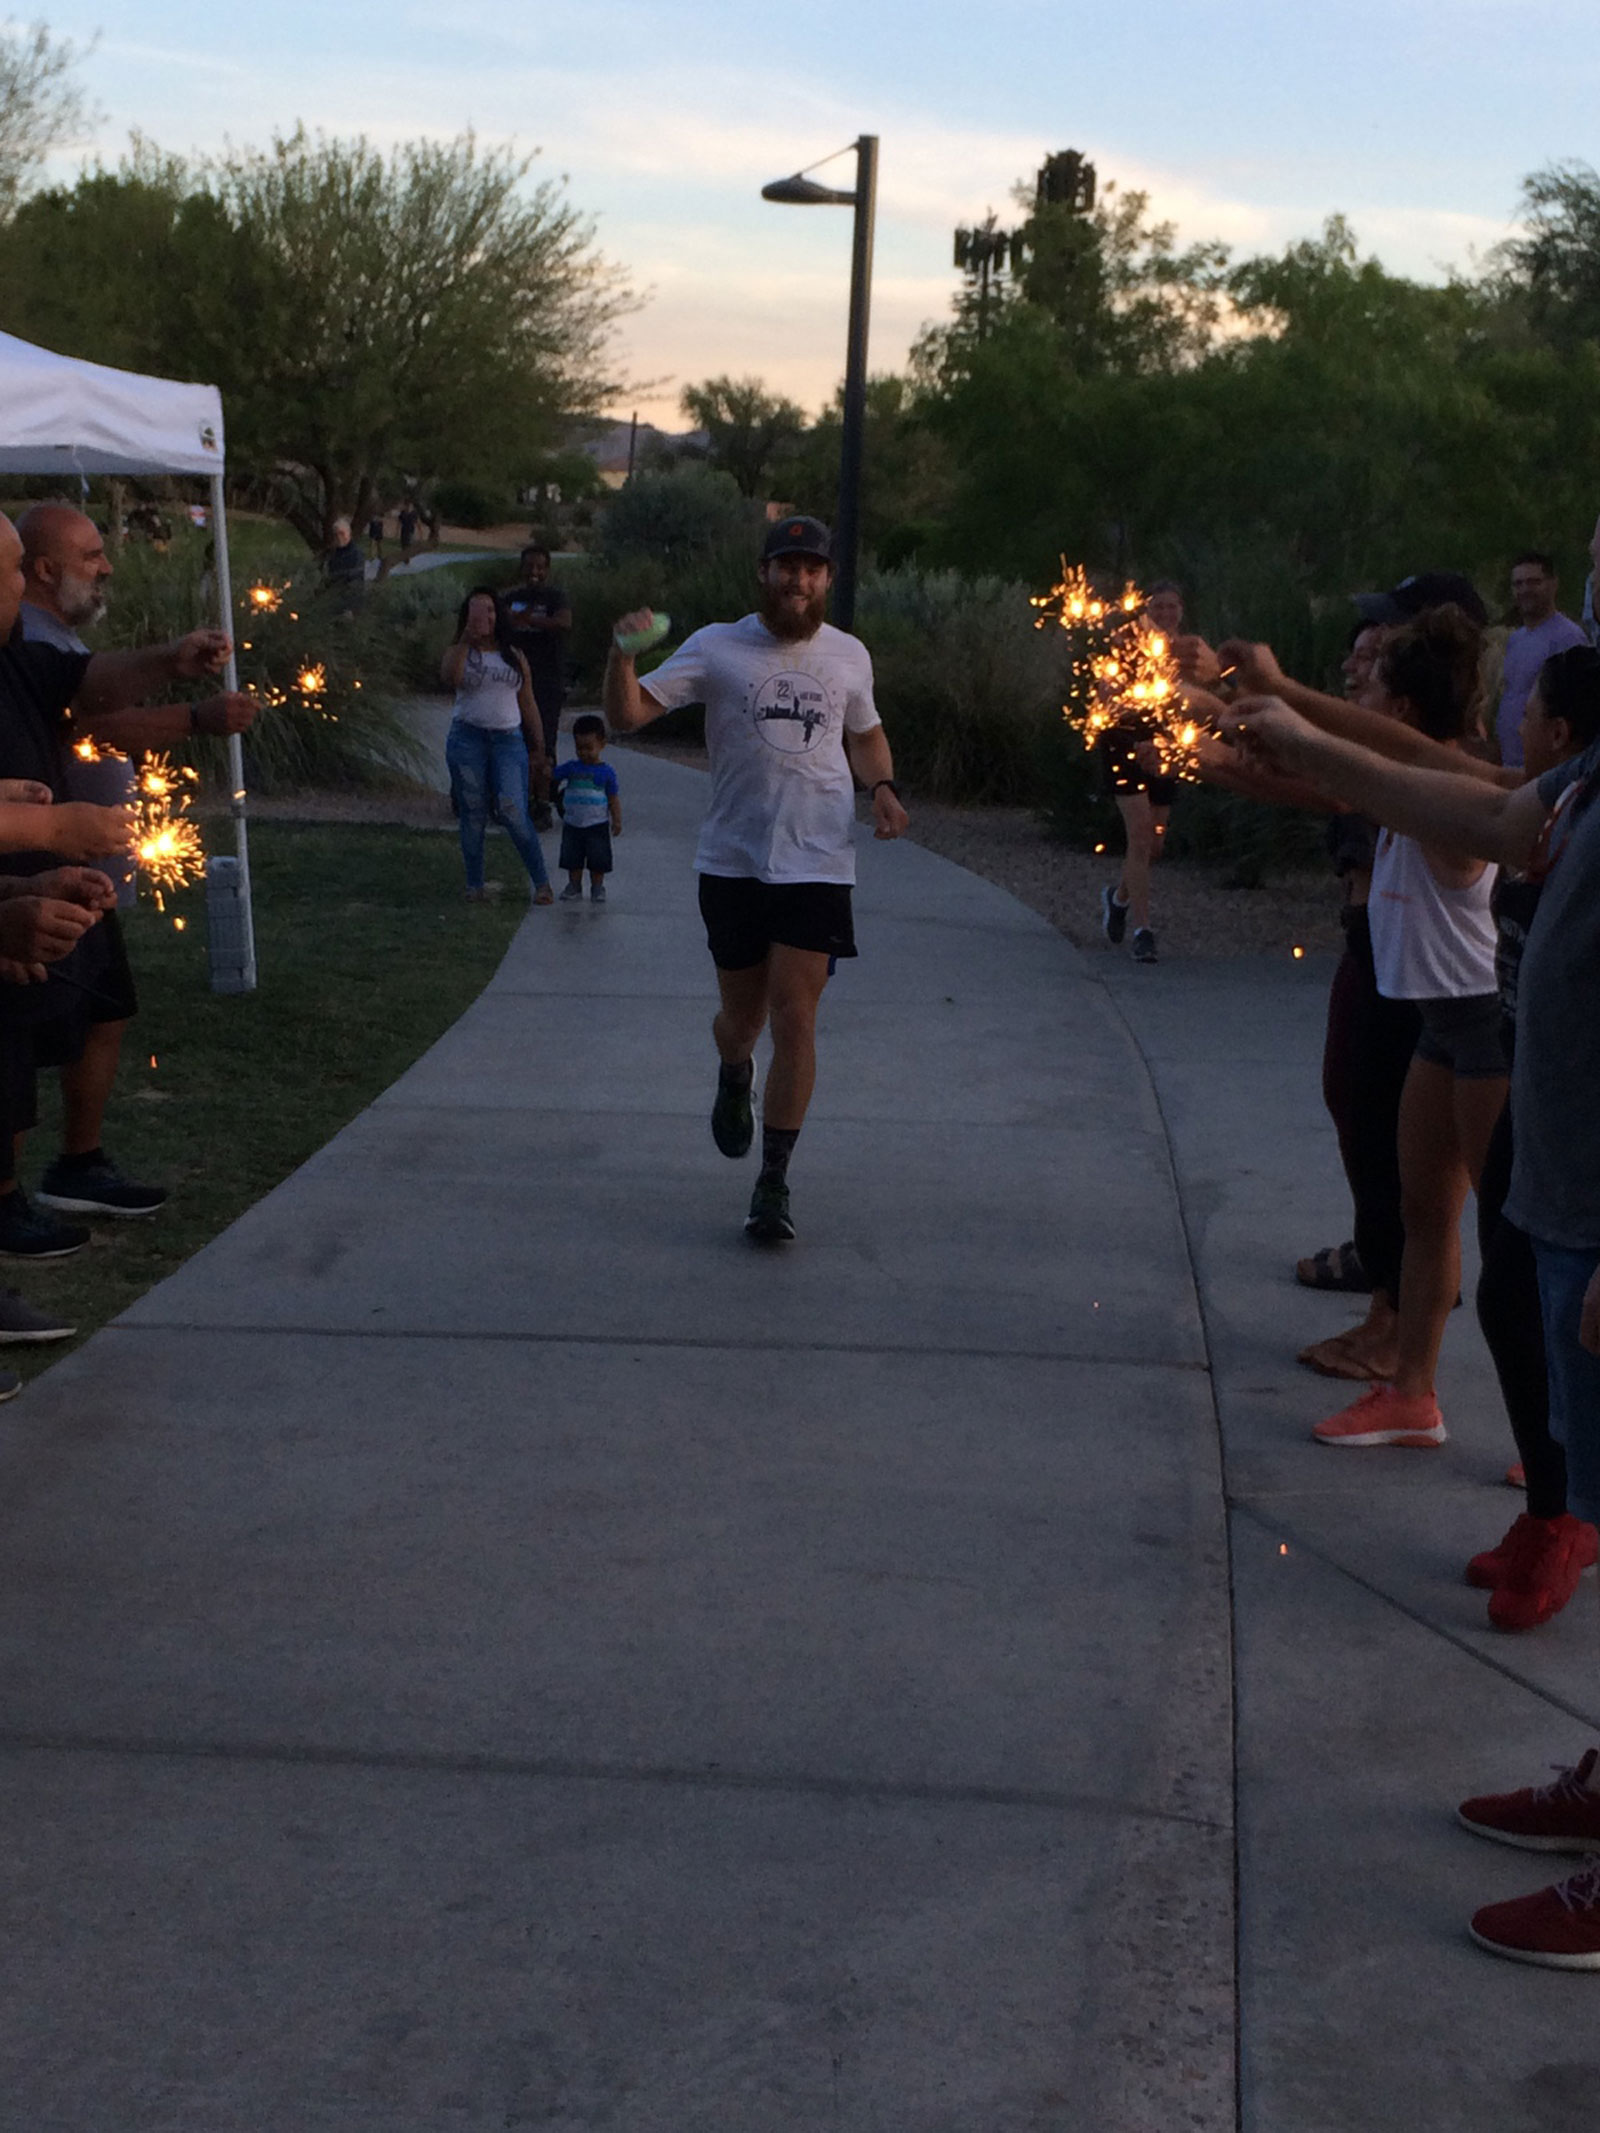 He ran 100 miles in a day to raise nearly $17,000 for suicide prevention programs for veterans